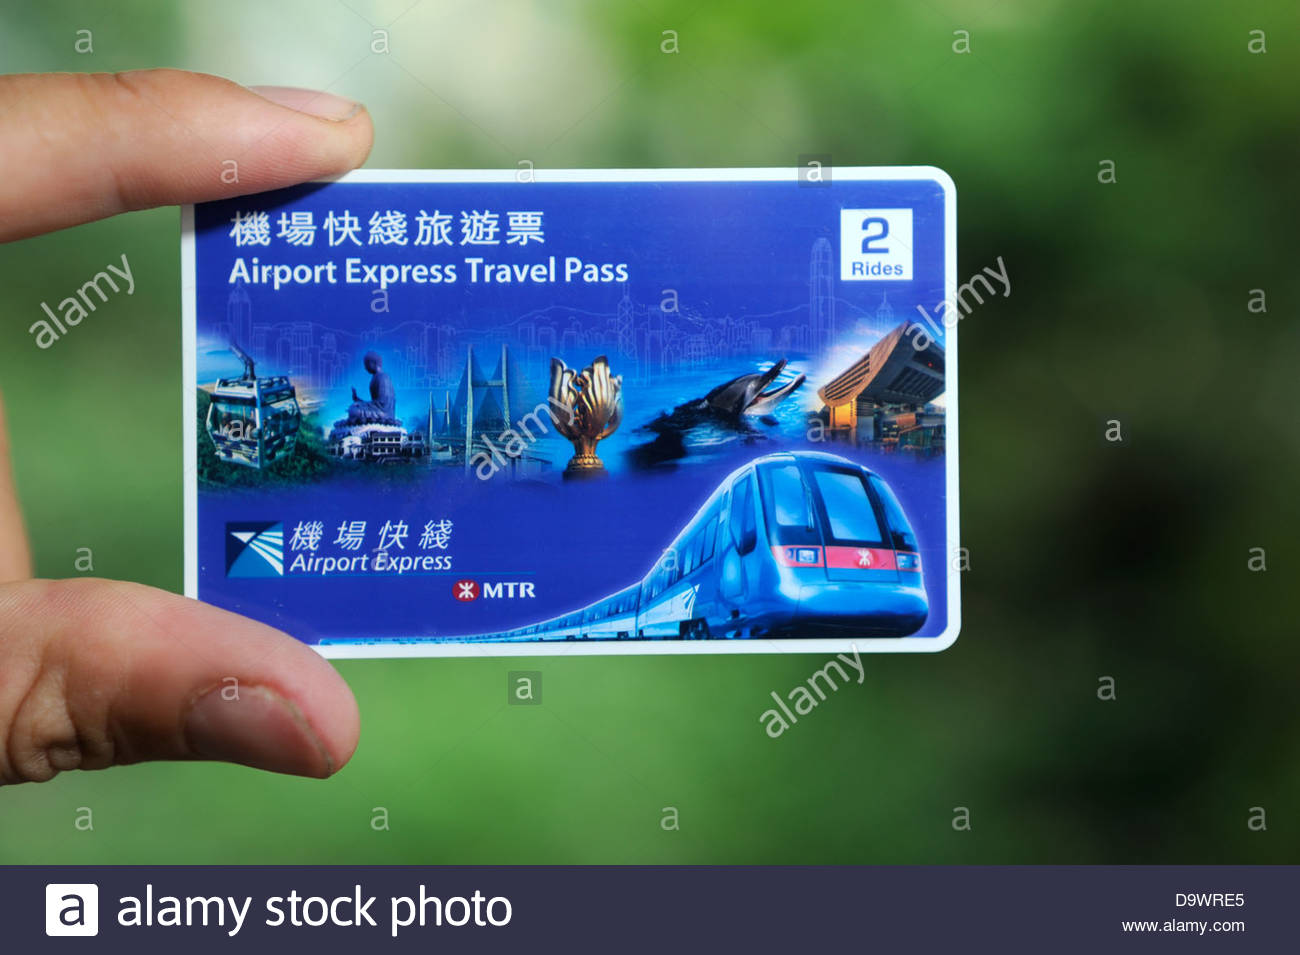 De l'aéroport de Hong Kong express travel pass. Photo Stock